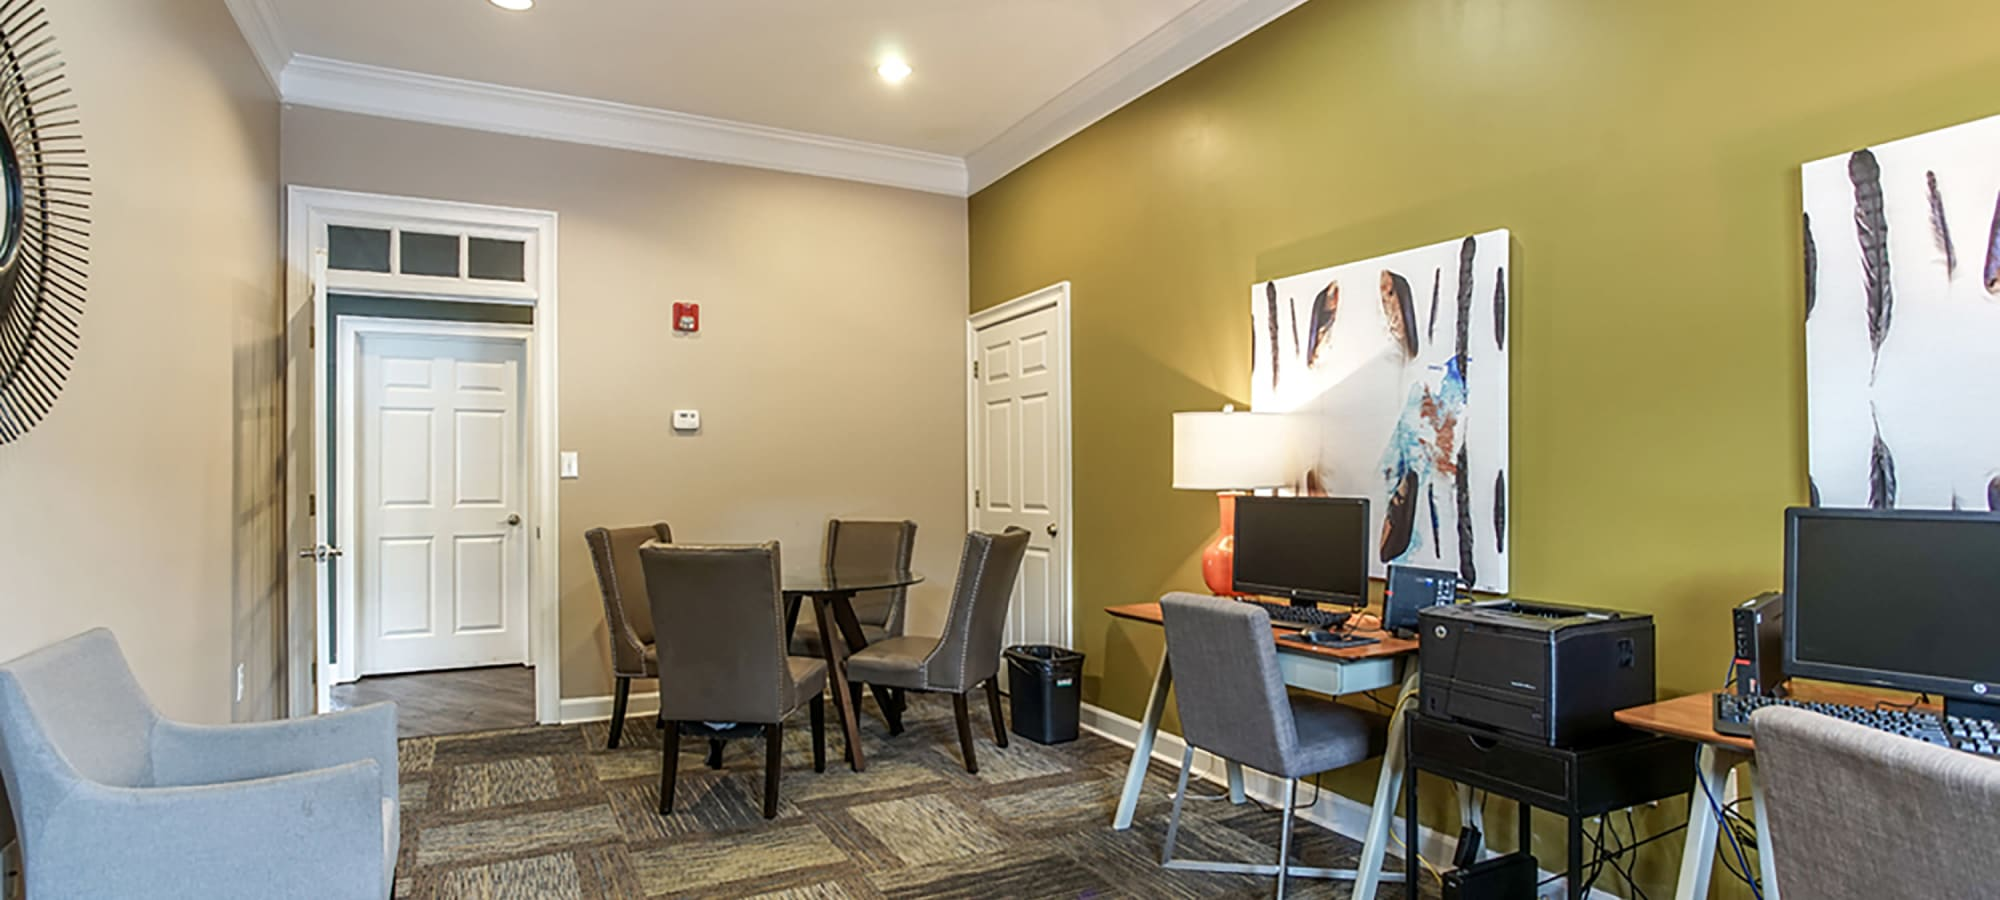 Amenities at Meadow View in College Park, Georgia